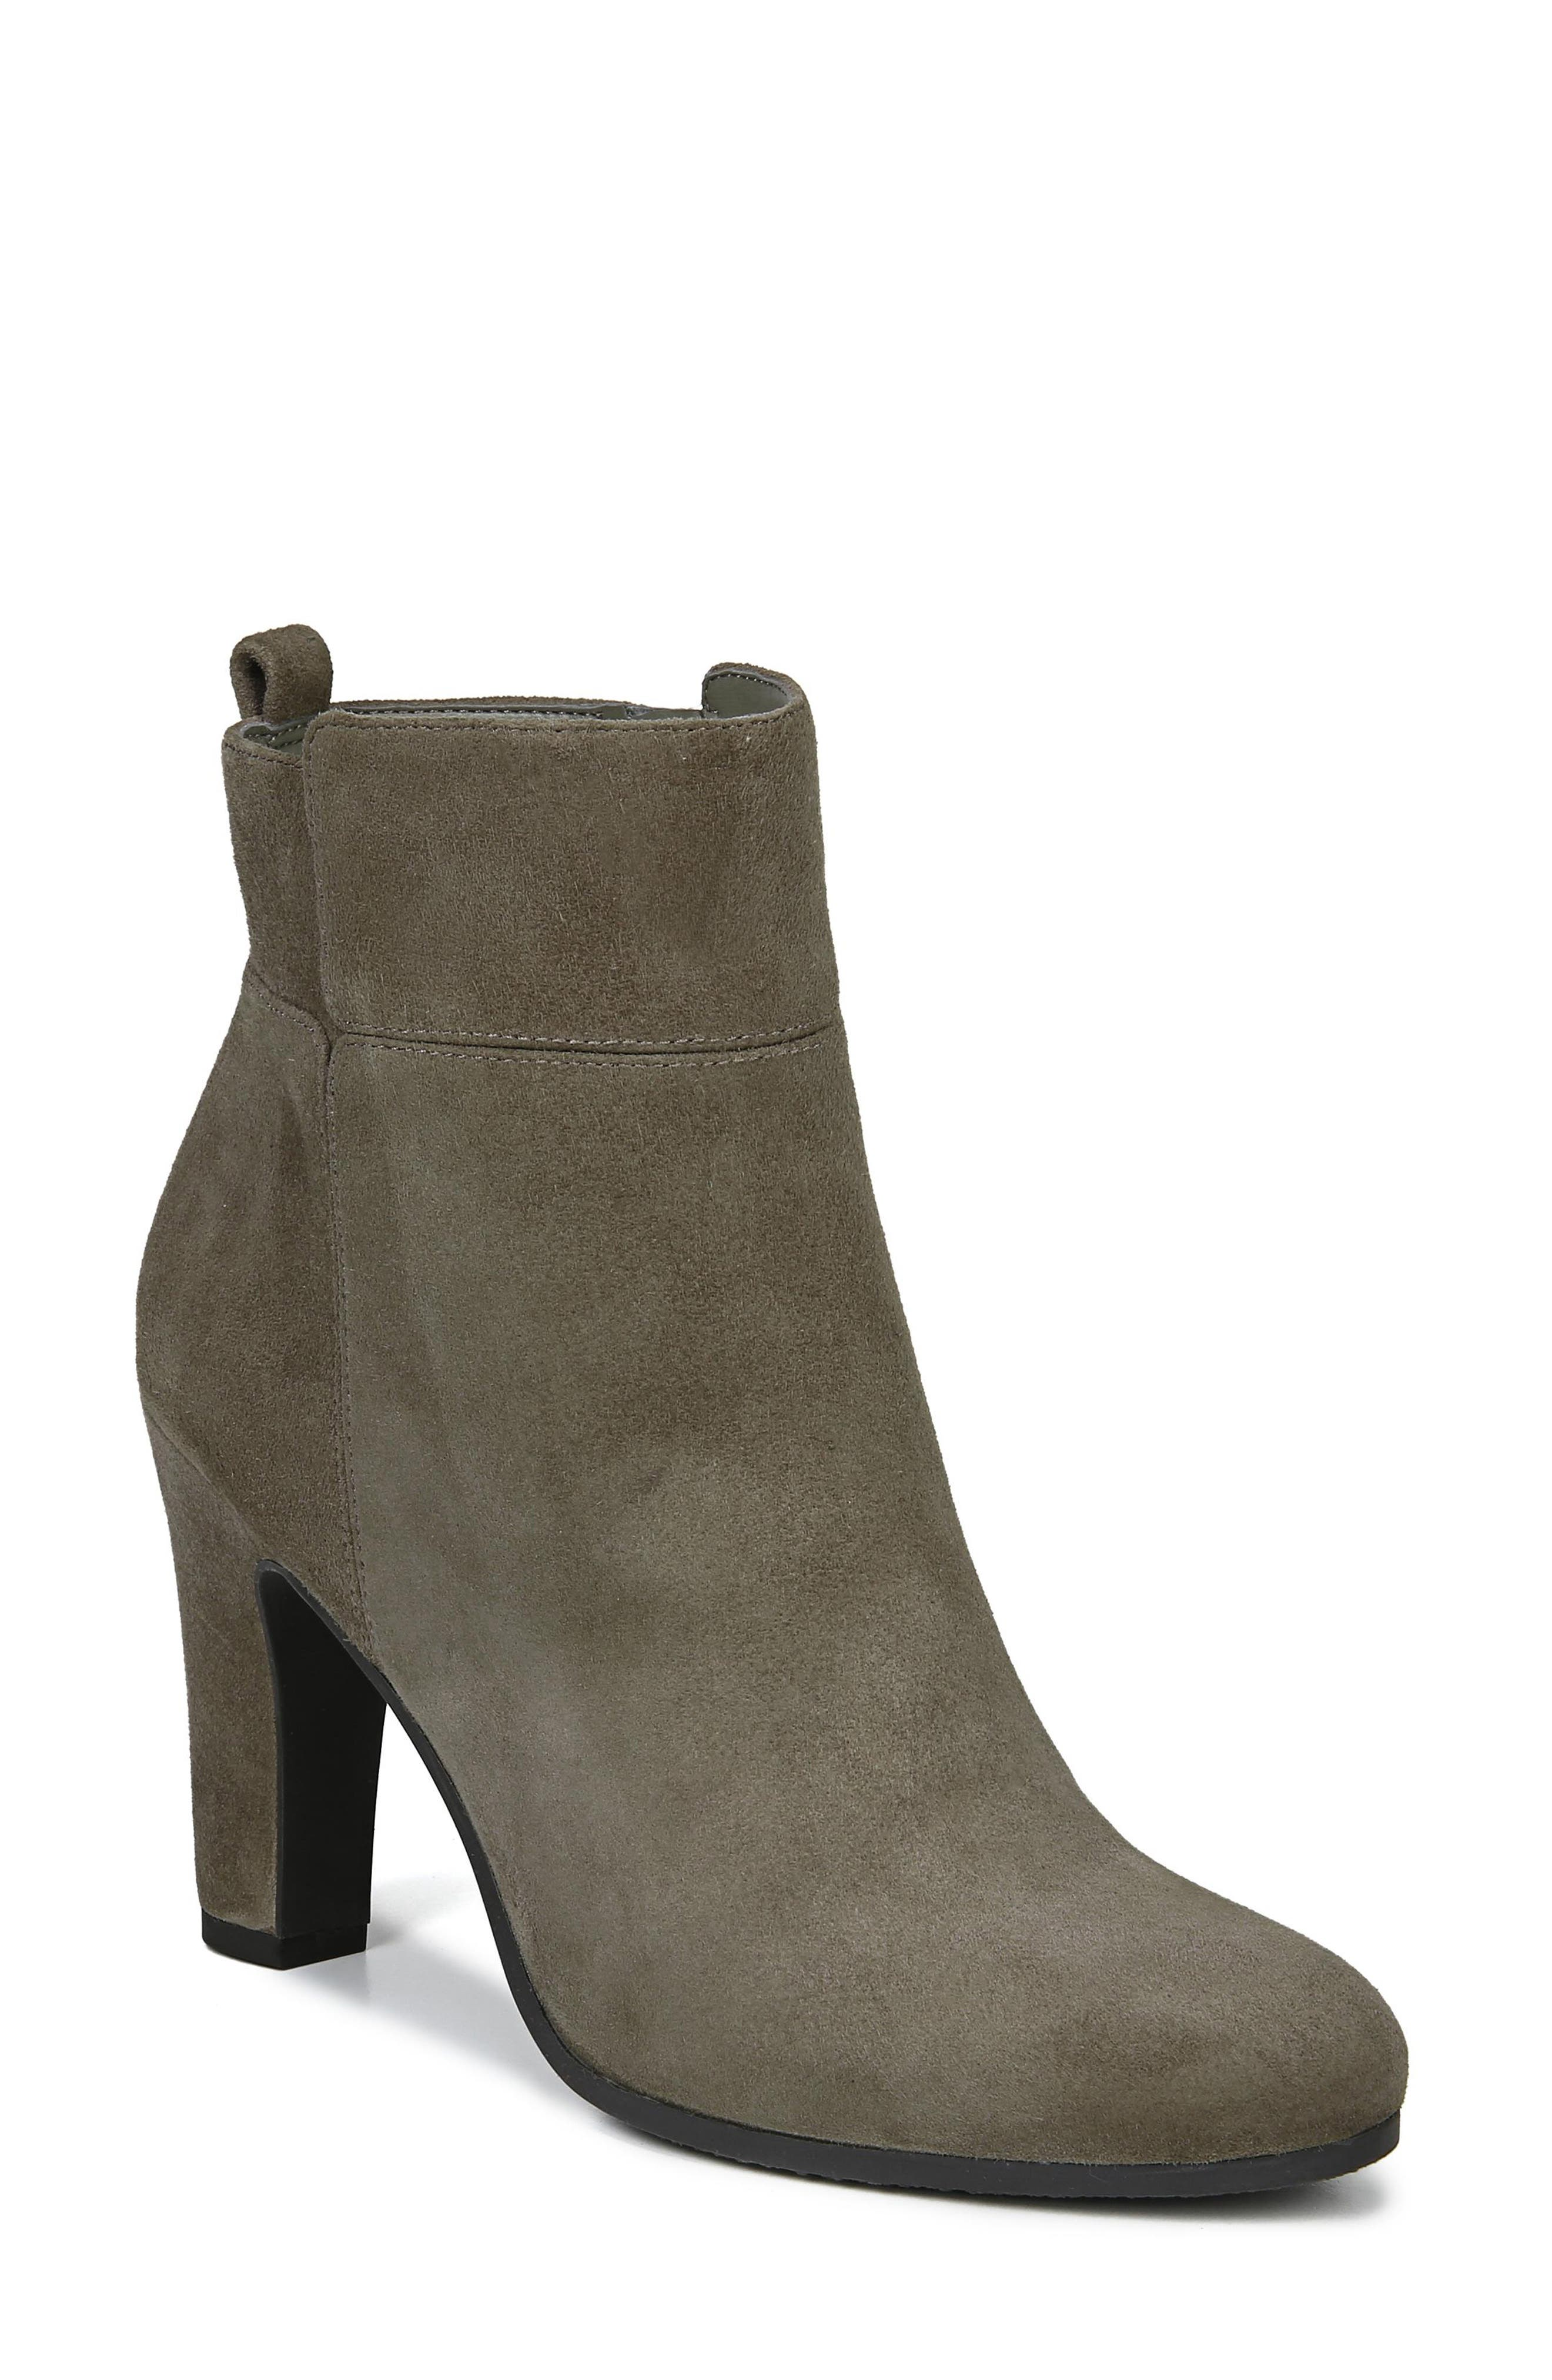 Sianna Bootie,                             Main thumbnail 1, color,                             FLINT GREY SUEDE